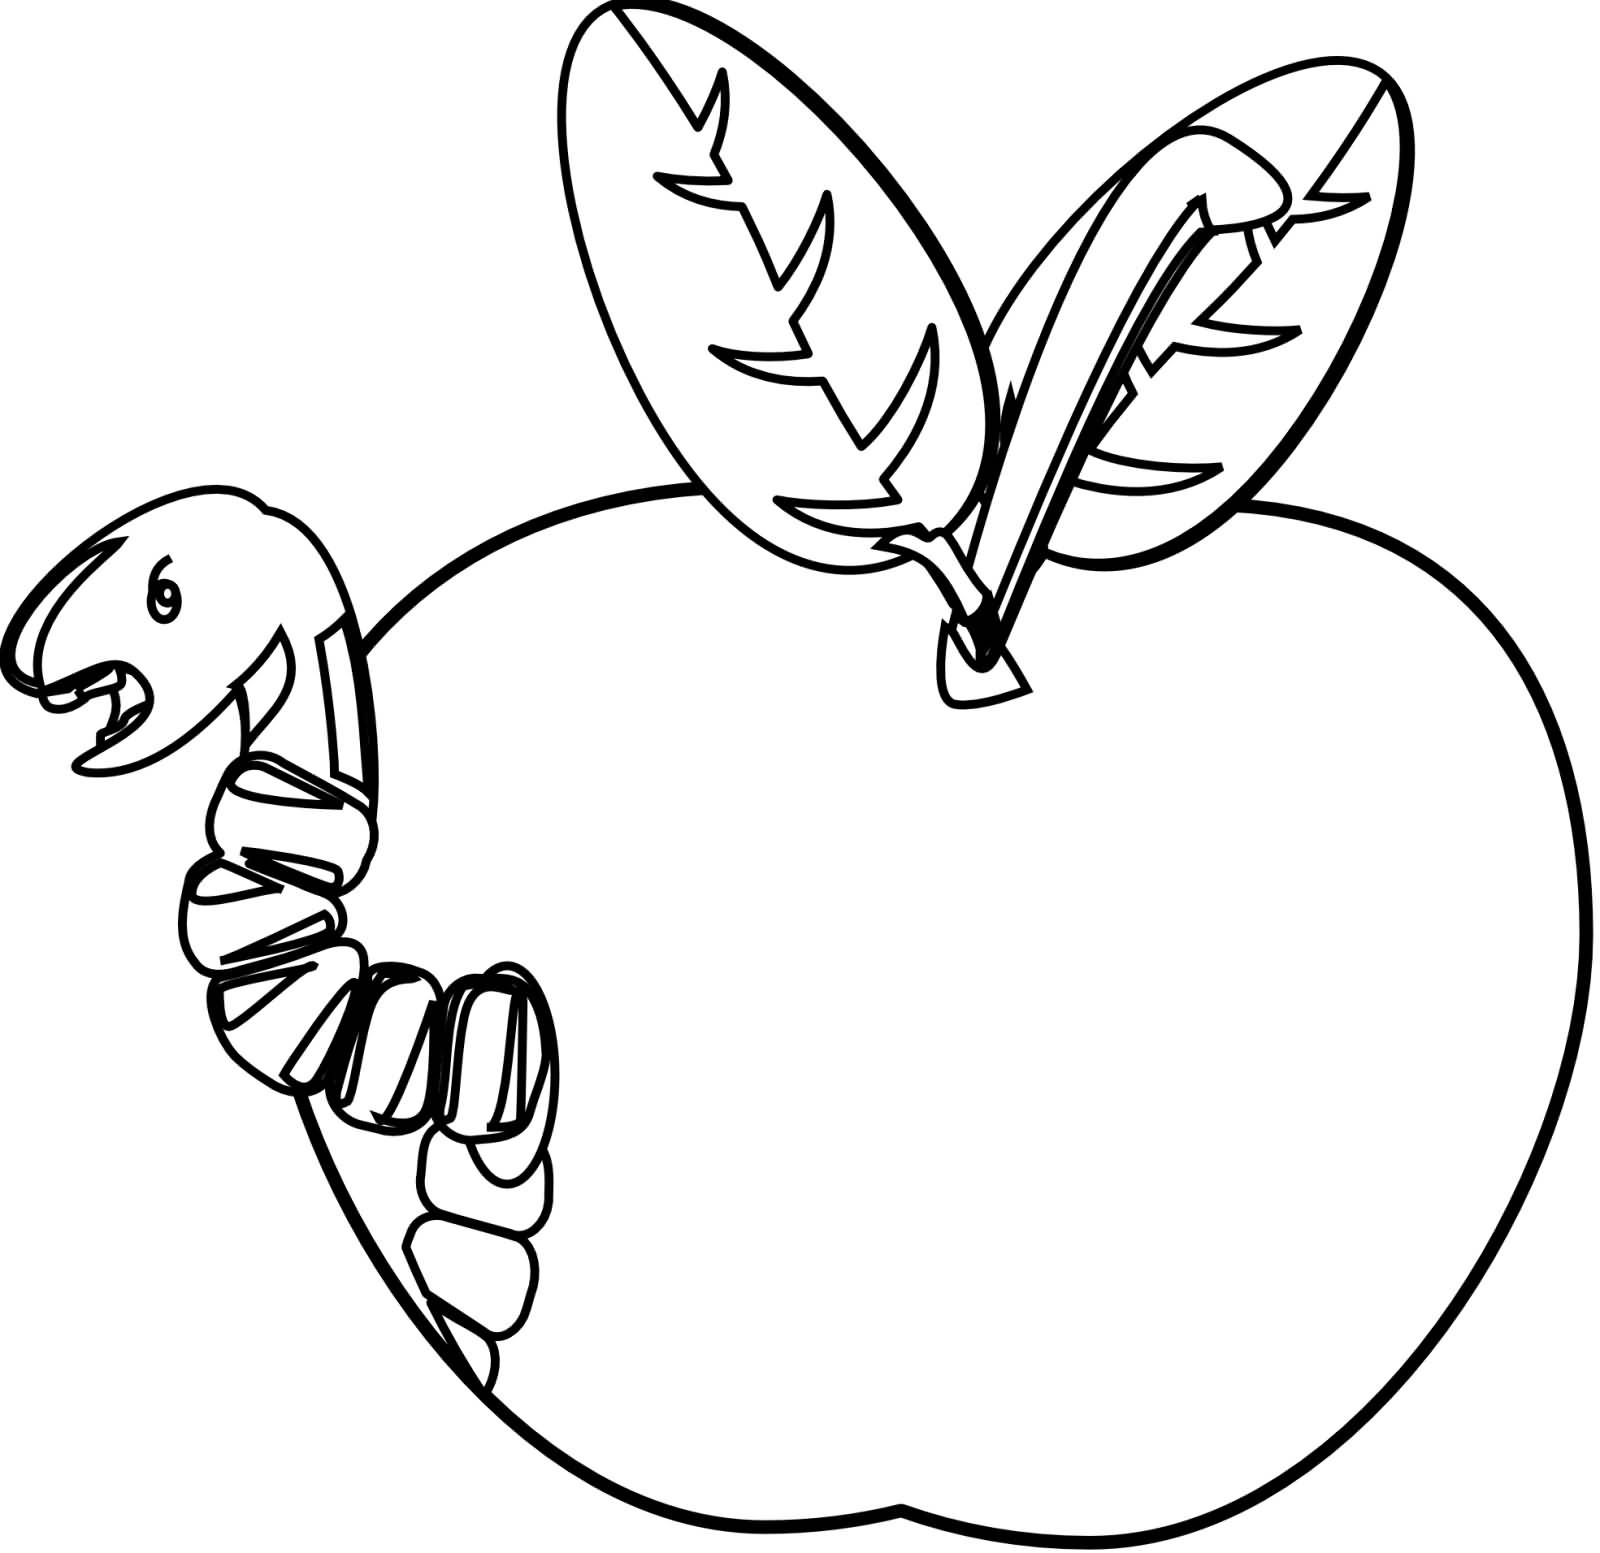 Worm clipart one. Black and white free